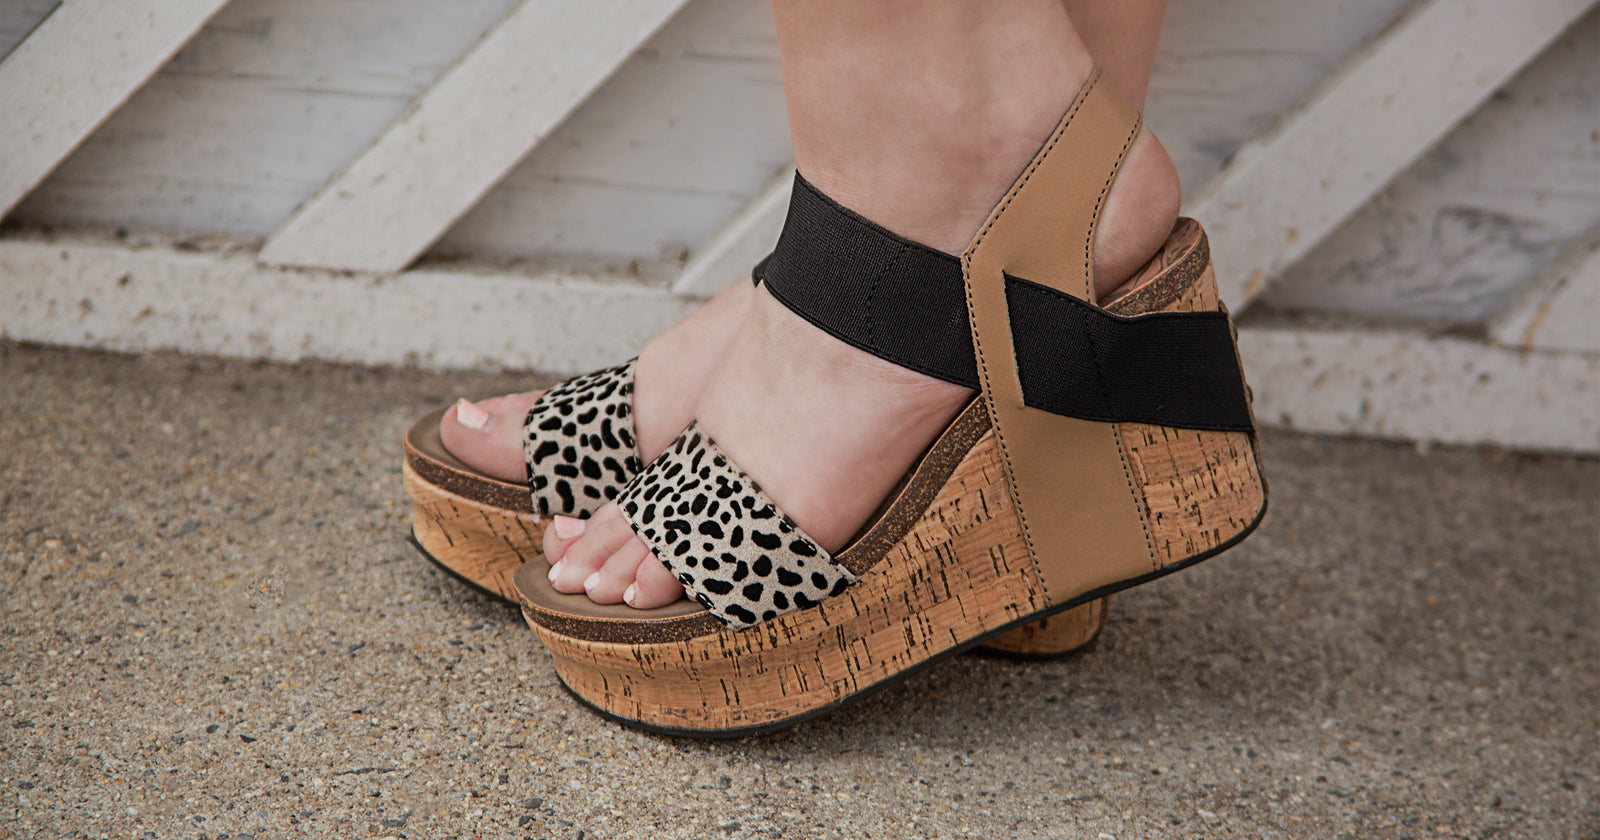 3 Ways to Wear the Bushnell Wedges